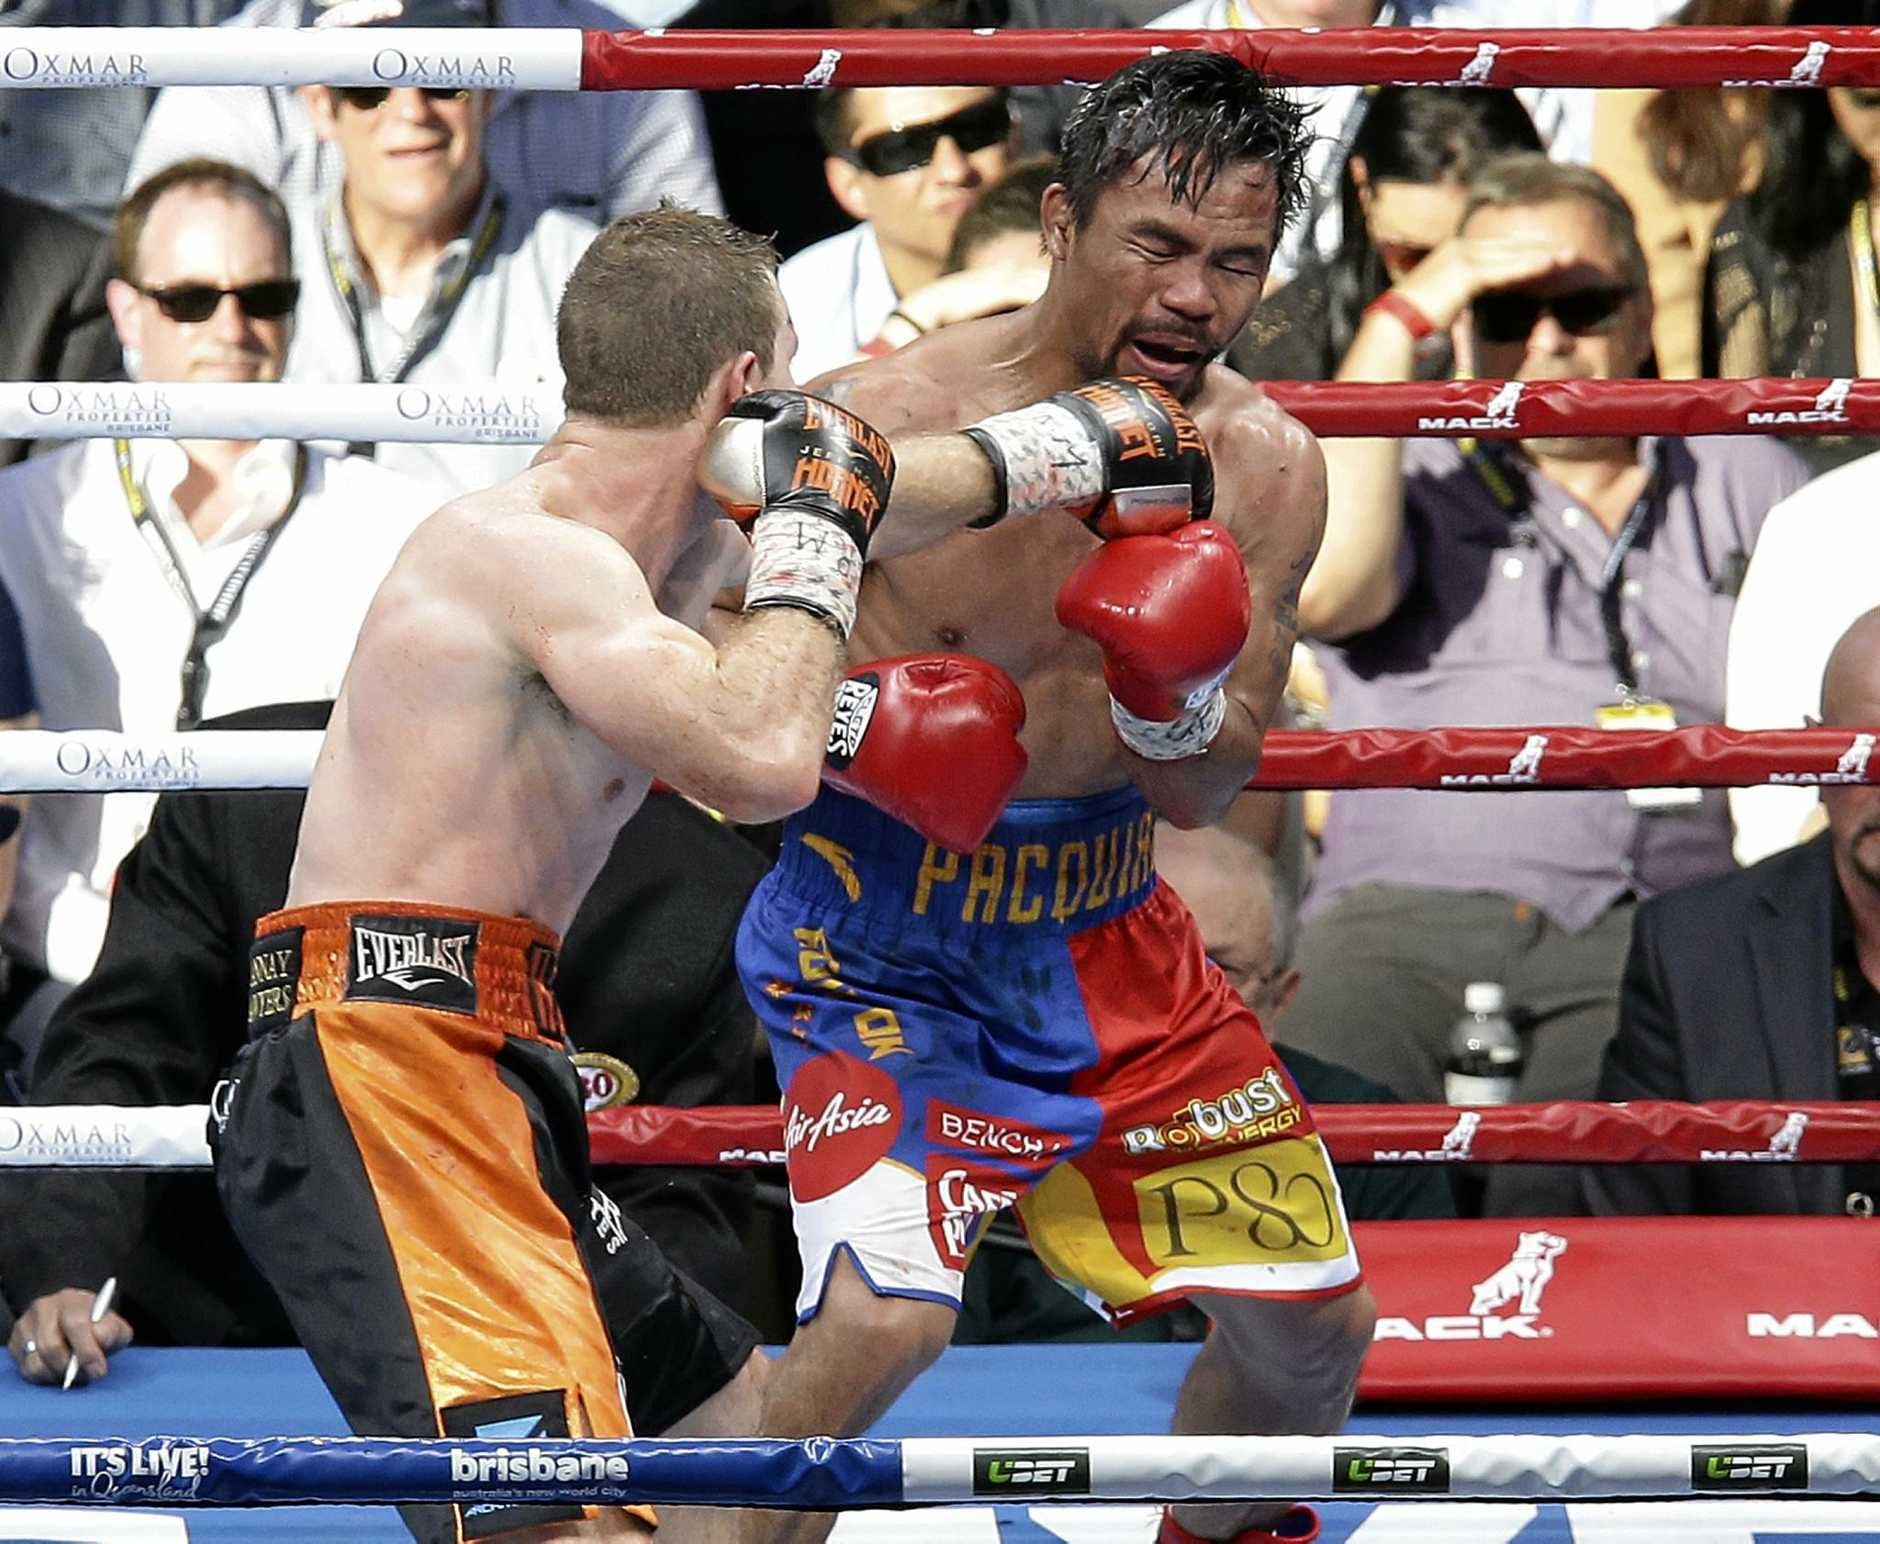 Manny Pacquiao (right) of the Philippines and Australia's Jeff Horn of Australia fight during their WBO World welterweight title bout in Brisbane.